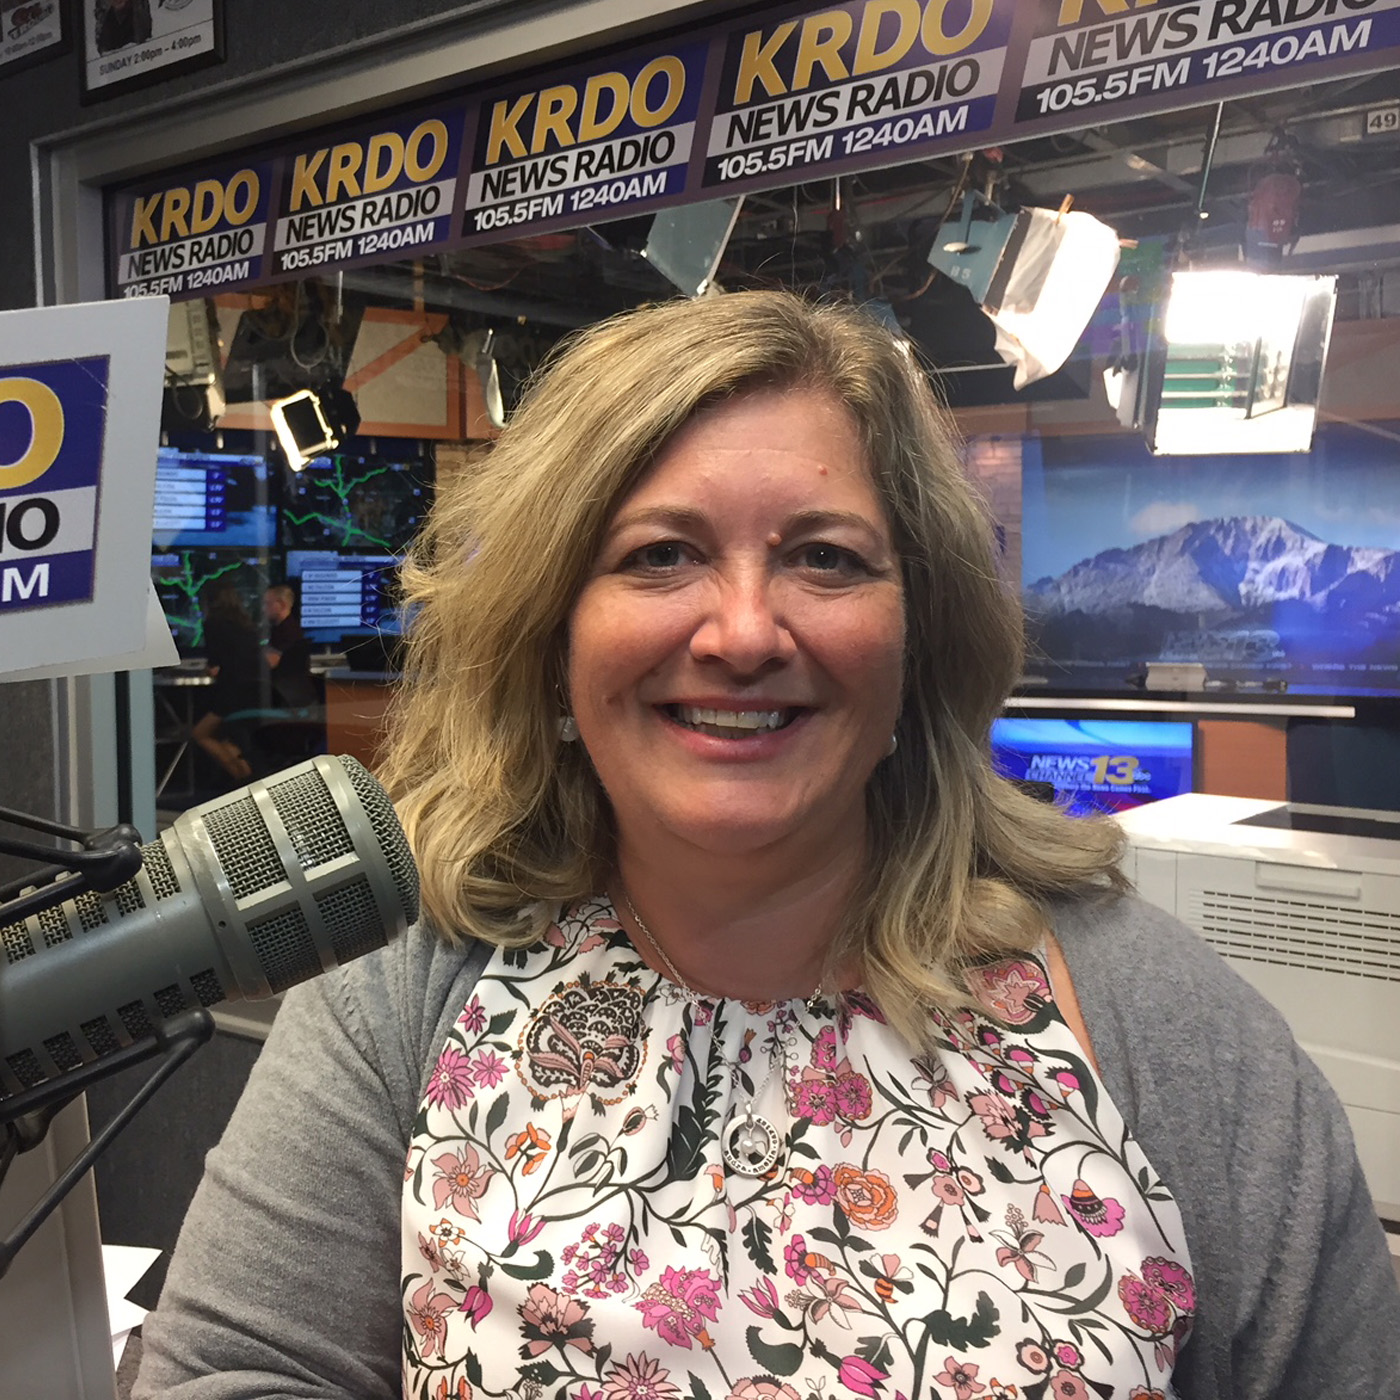 KRDO's Morning News - June 12, 2019